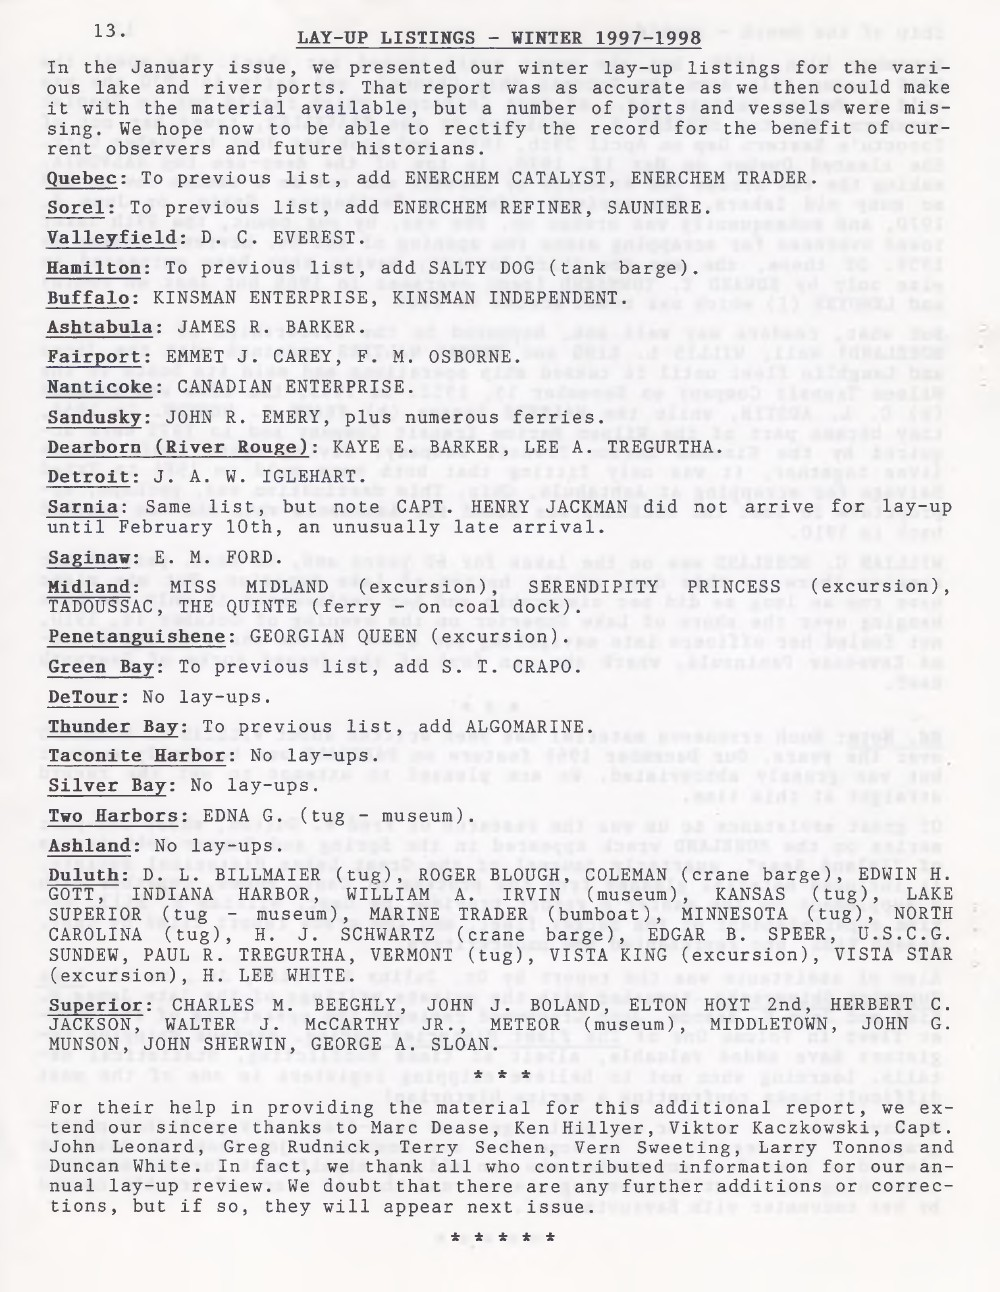 Scanner, v. 30, no. 6 (March 1998)